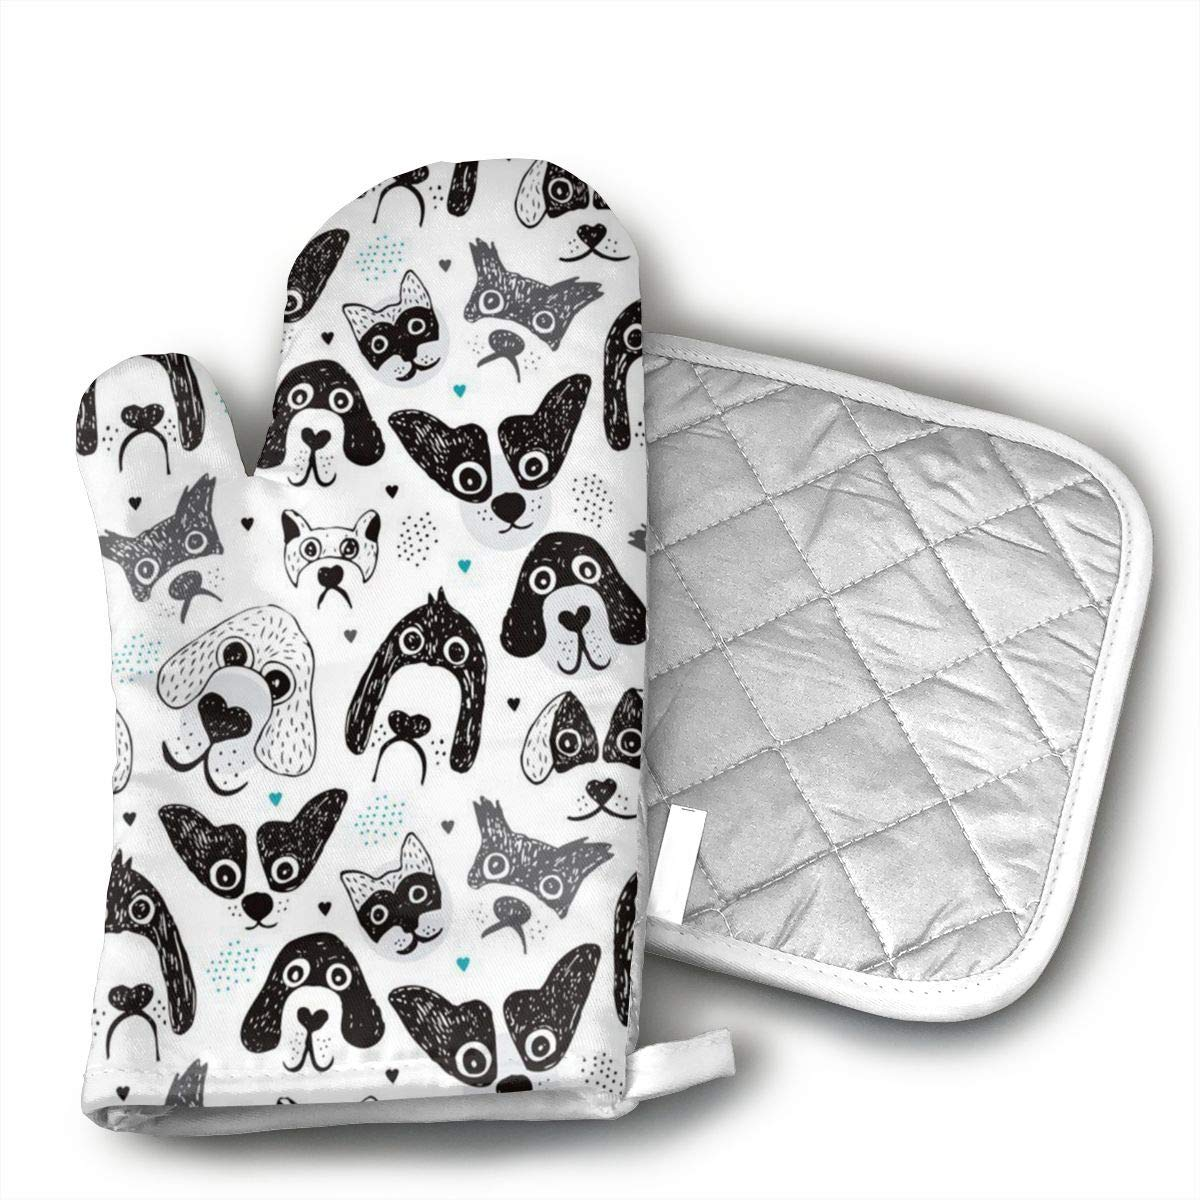 I Love Big Silly Dogs Heat Resistant Oven Mitts + Cotton Pot Holders Non Slip Oven Gloves for Kitchen Cooking Baking, BBQ, Grilling Machine Washable